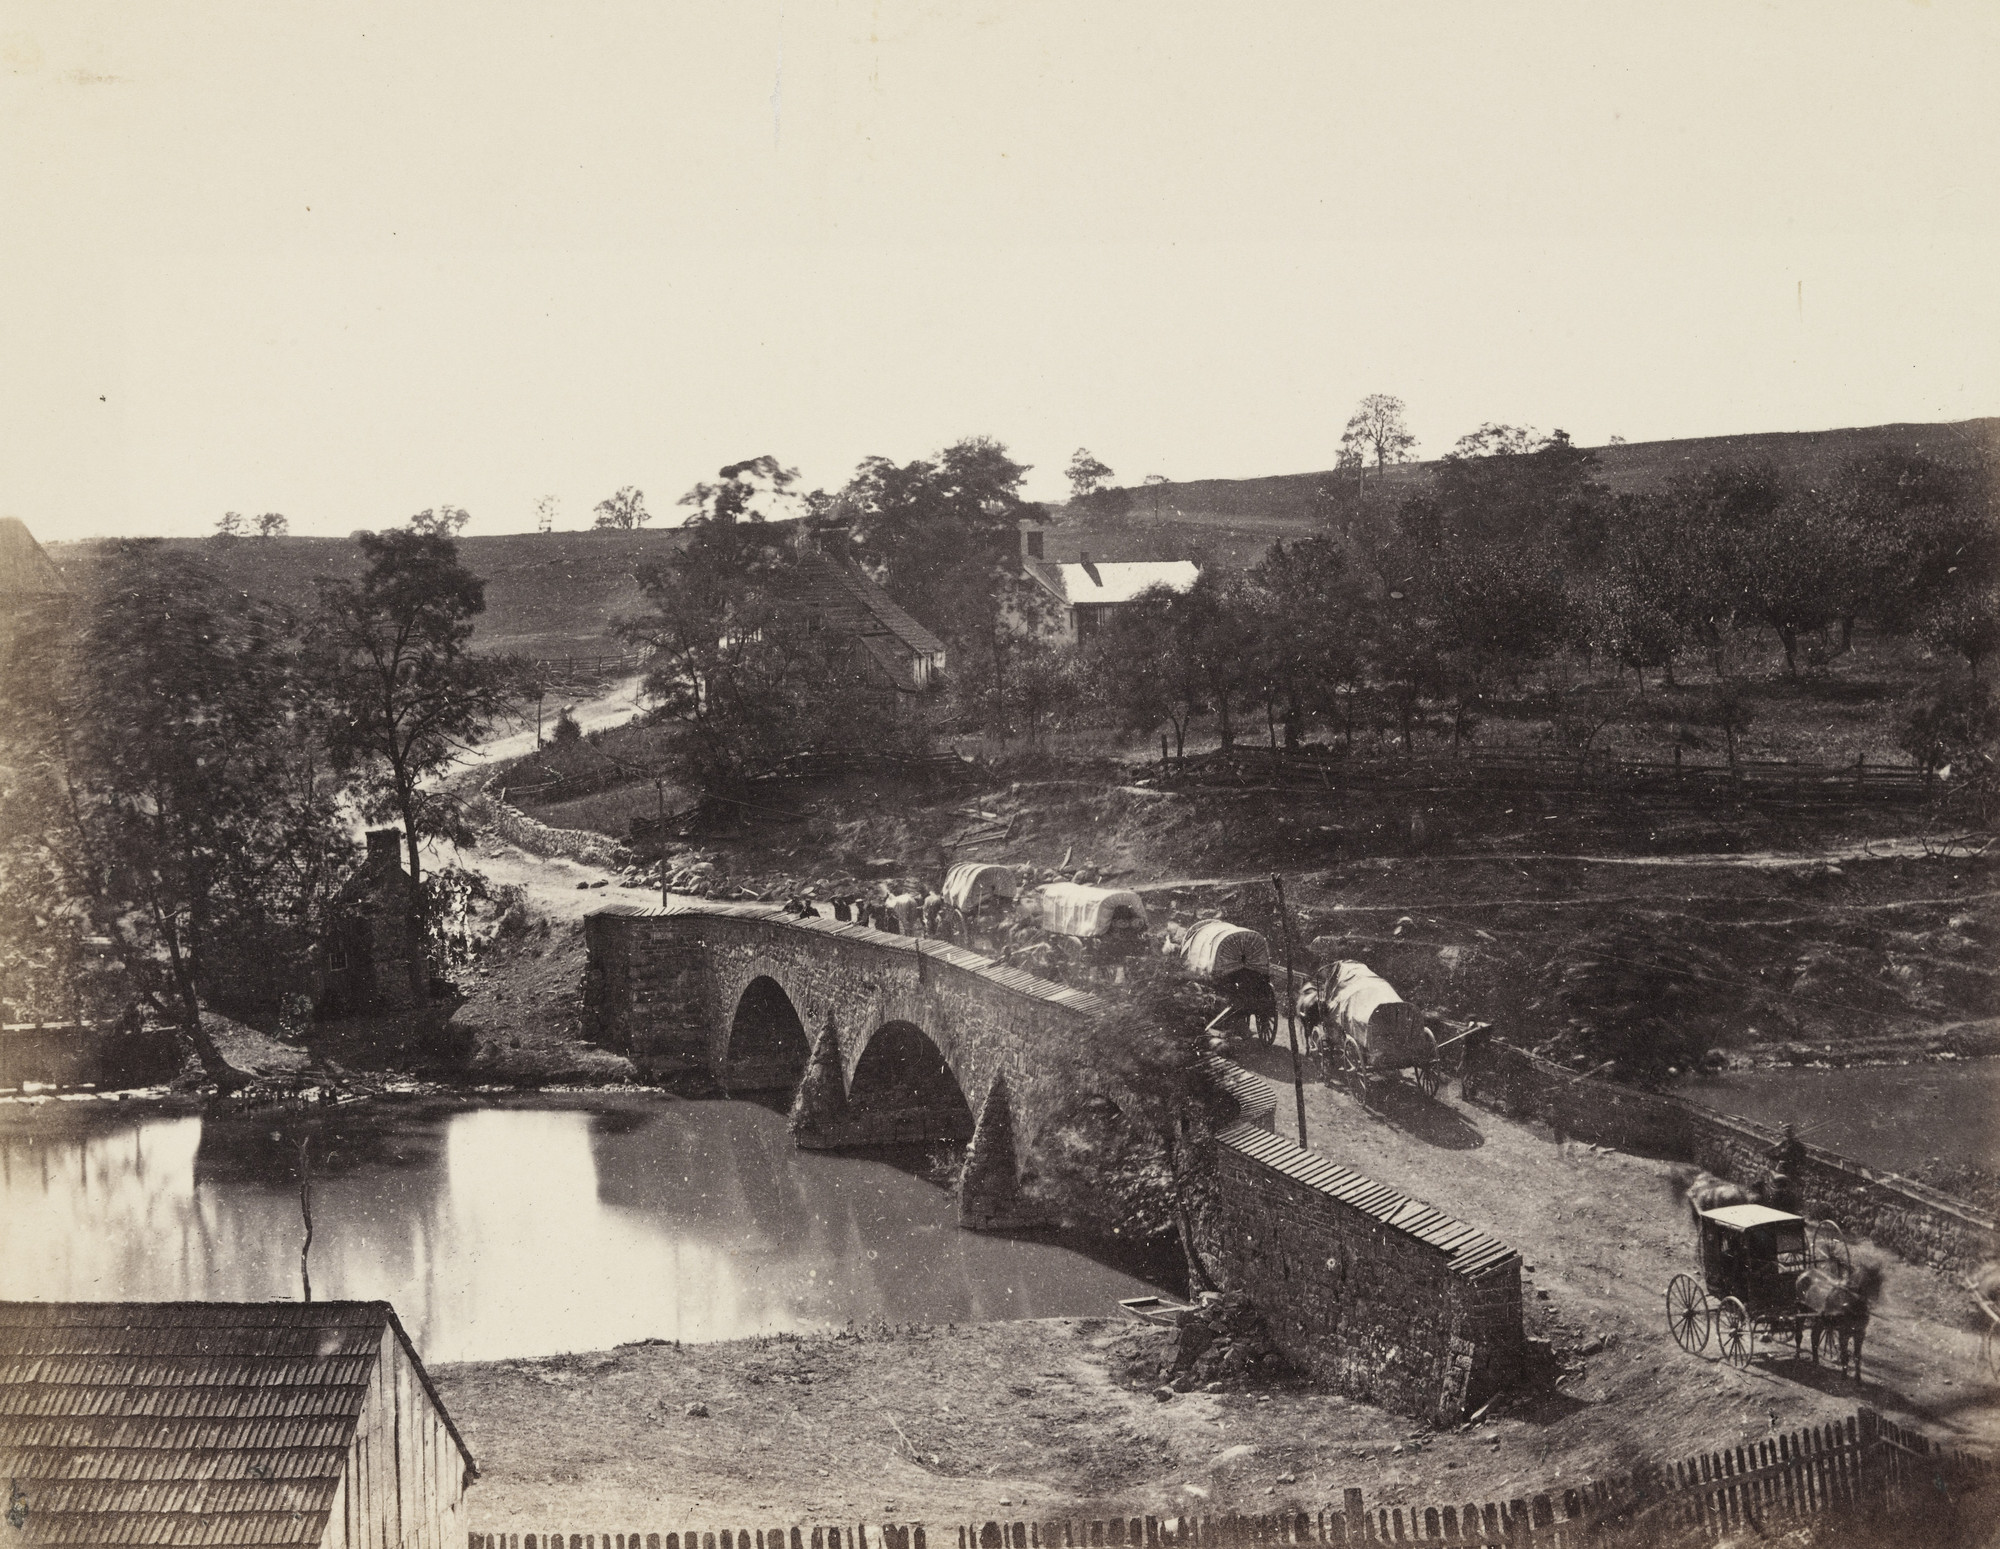 Alexander Gardner. Antietam Bridge, Maryland. September, 1862